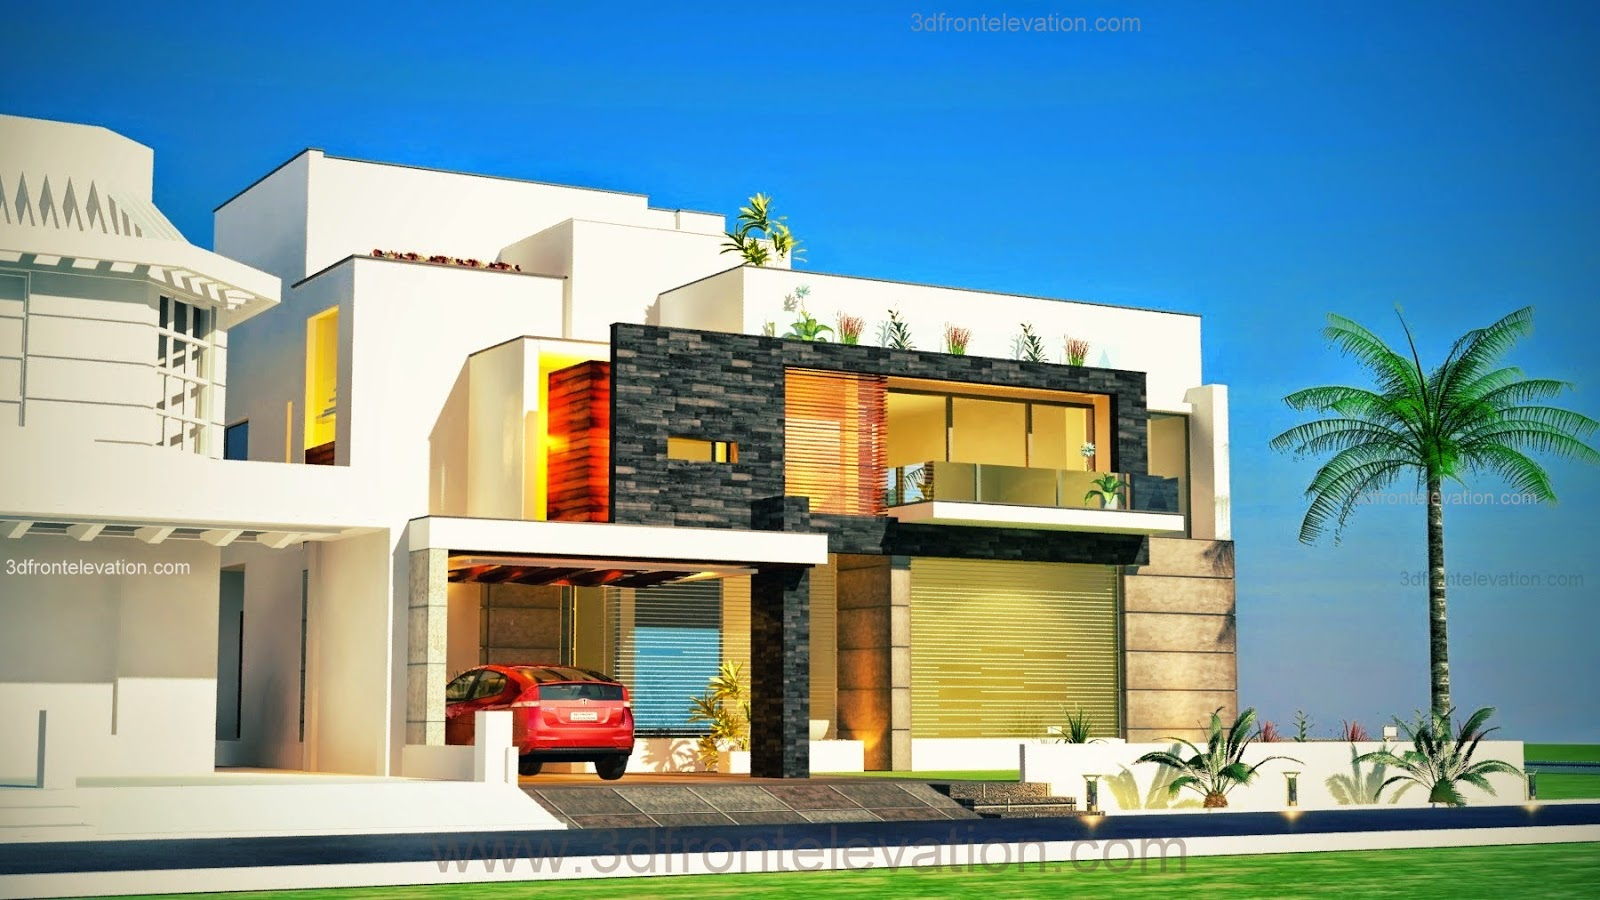 3d front 1 kanal plot new beautiful modern contemporary house design 3d front Hause on line